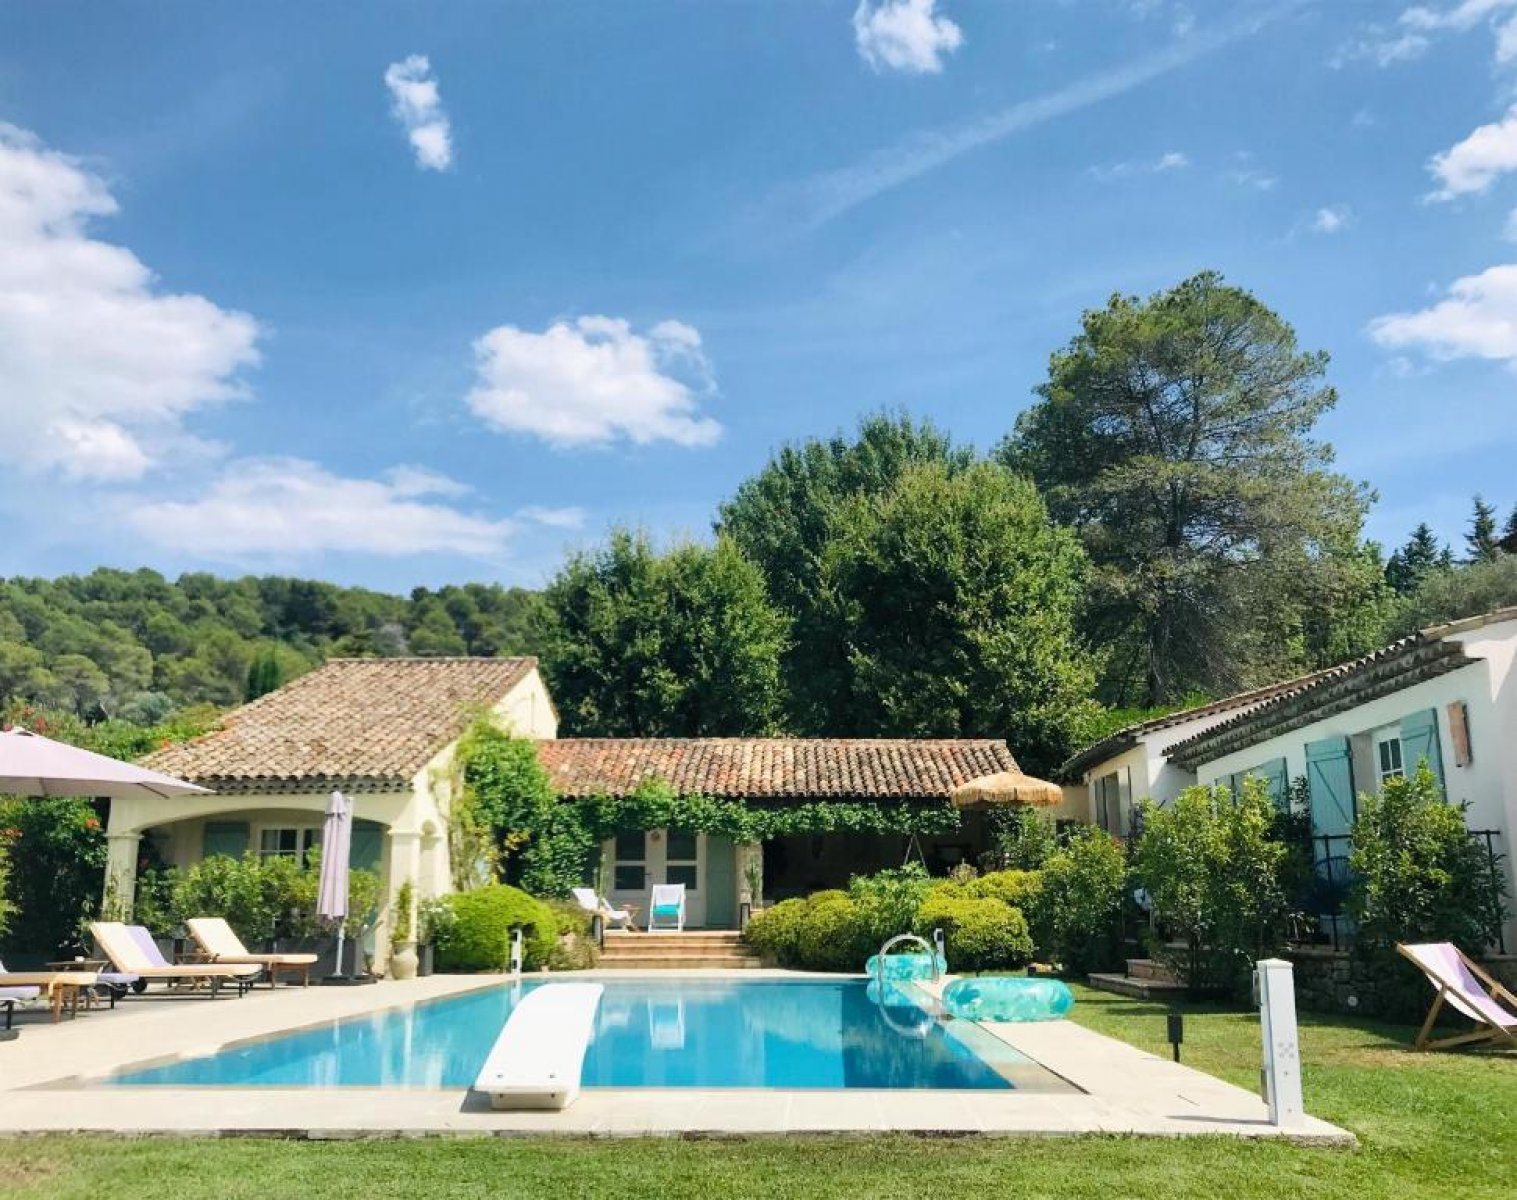 Villa for long term rent situated in provencal village of Mougins, South of France